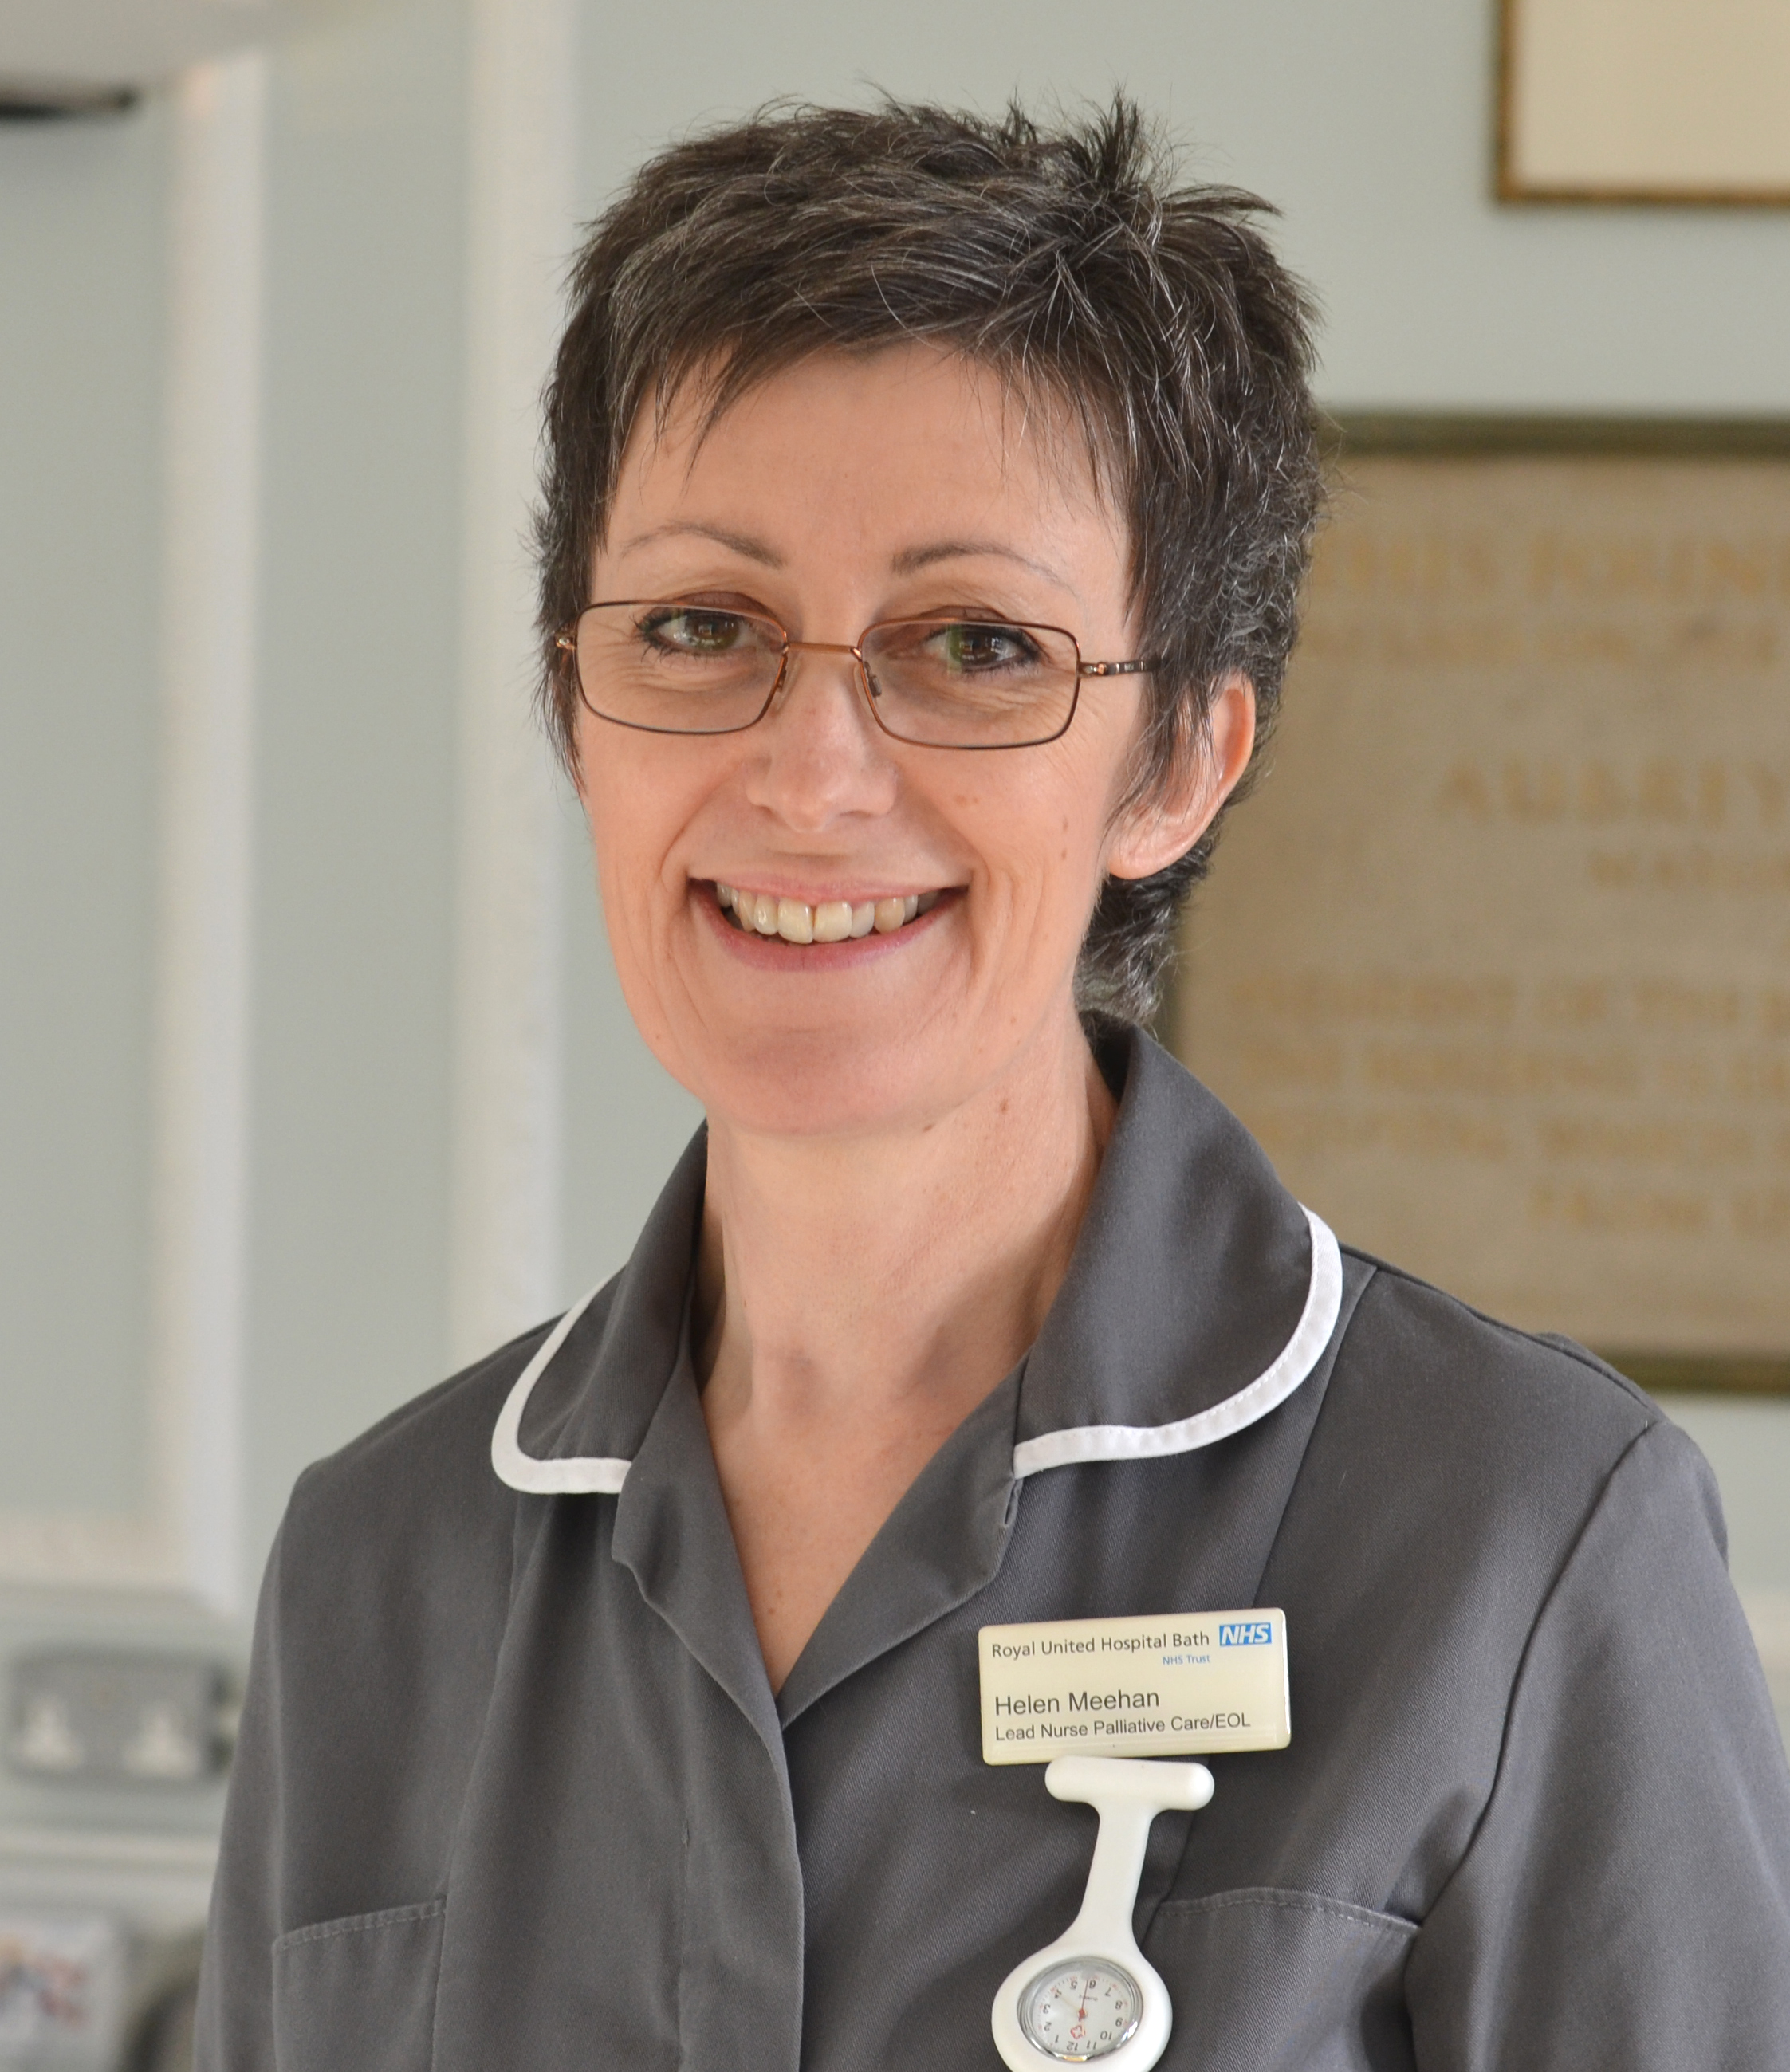 Helen Meehan, Lead Nurse Palliative Care and End of Life, at the Royal United Hospital in Bath.